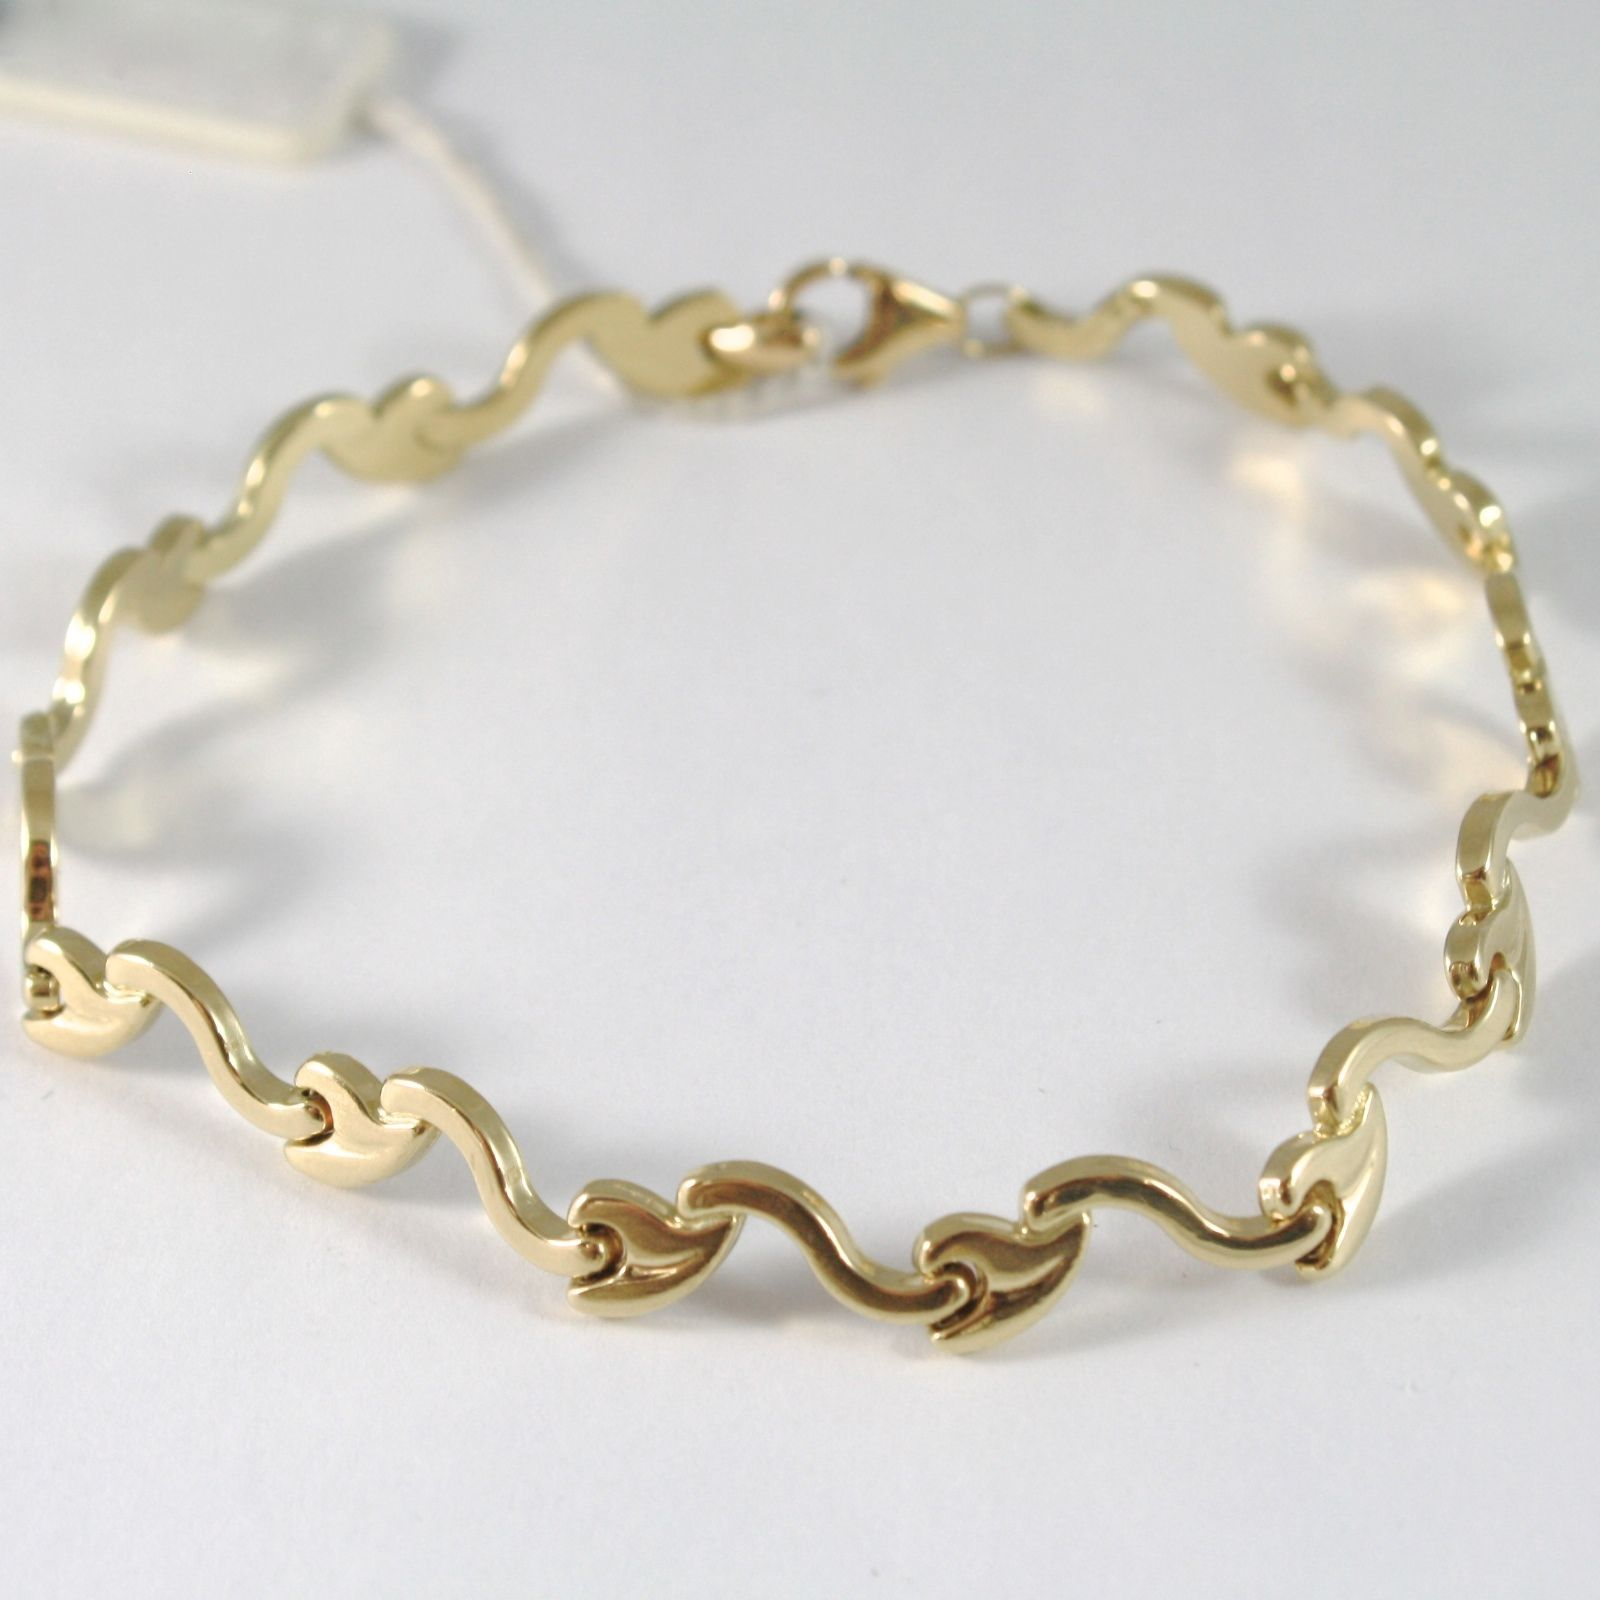 BRACELET YELLOW GOLD 750 18K WITH WAVES AND LEAVES, SEEDS RIGID, 21 CM LENGTH